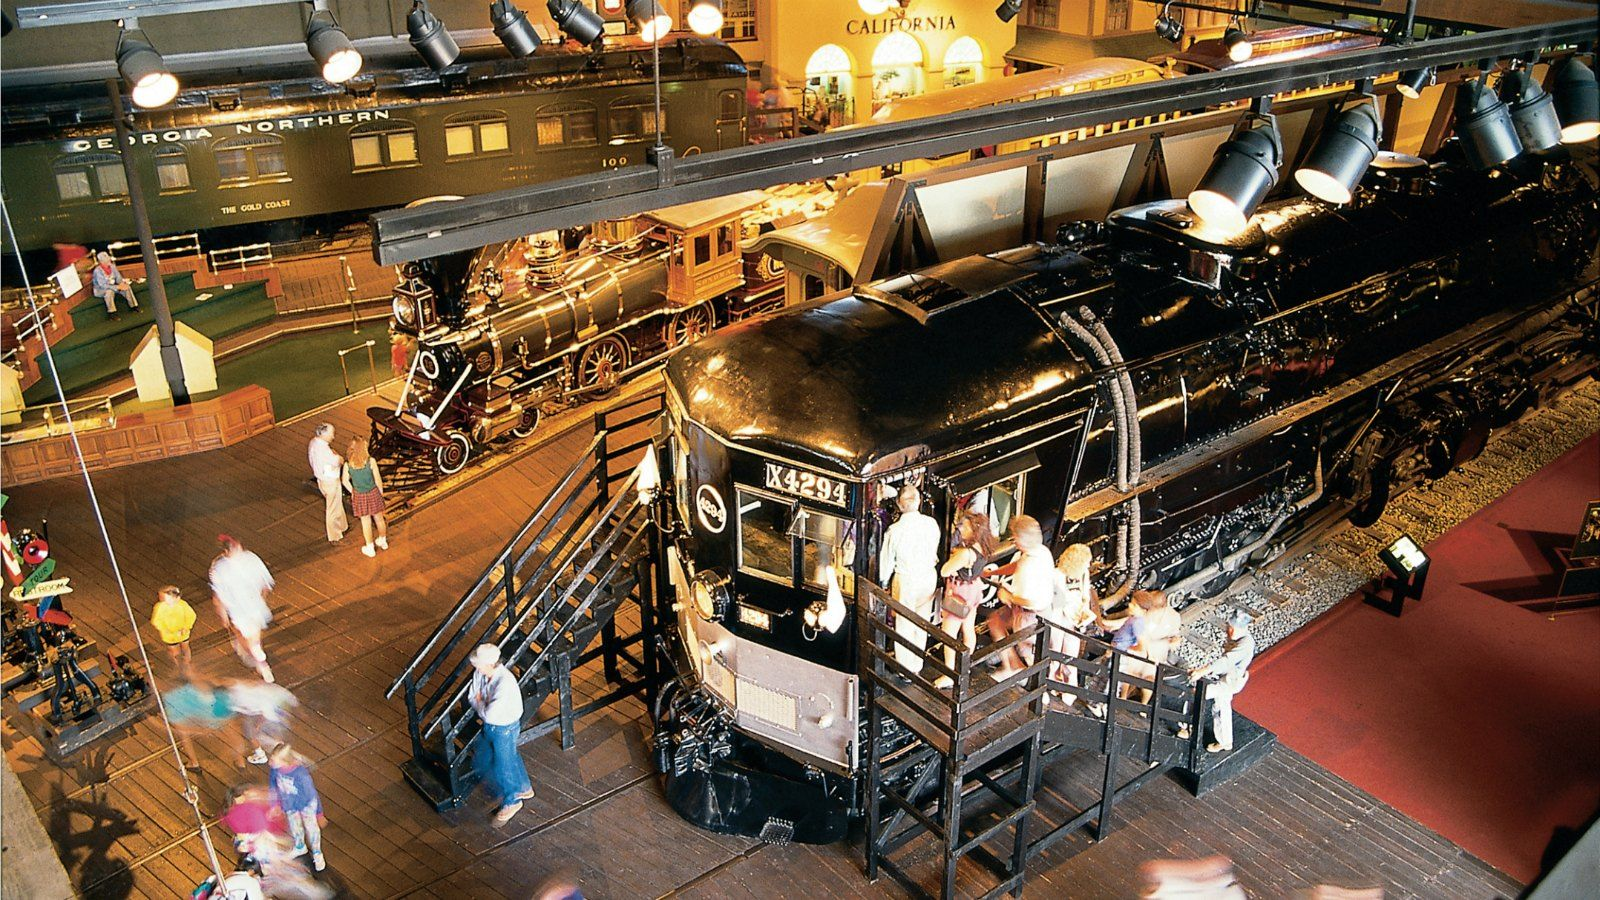 Things to Do in Sacramento - California State Railroad Museum